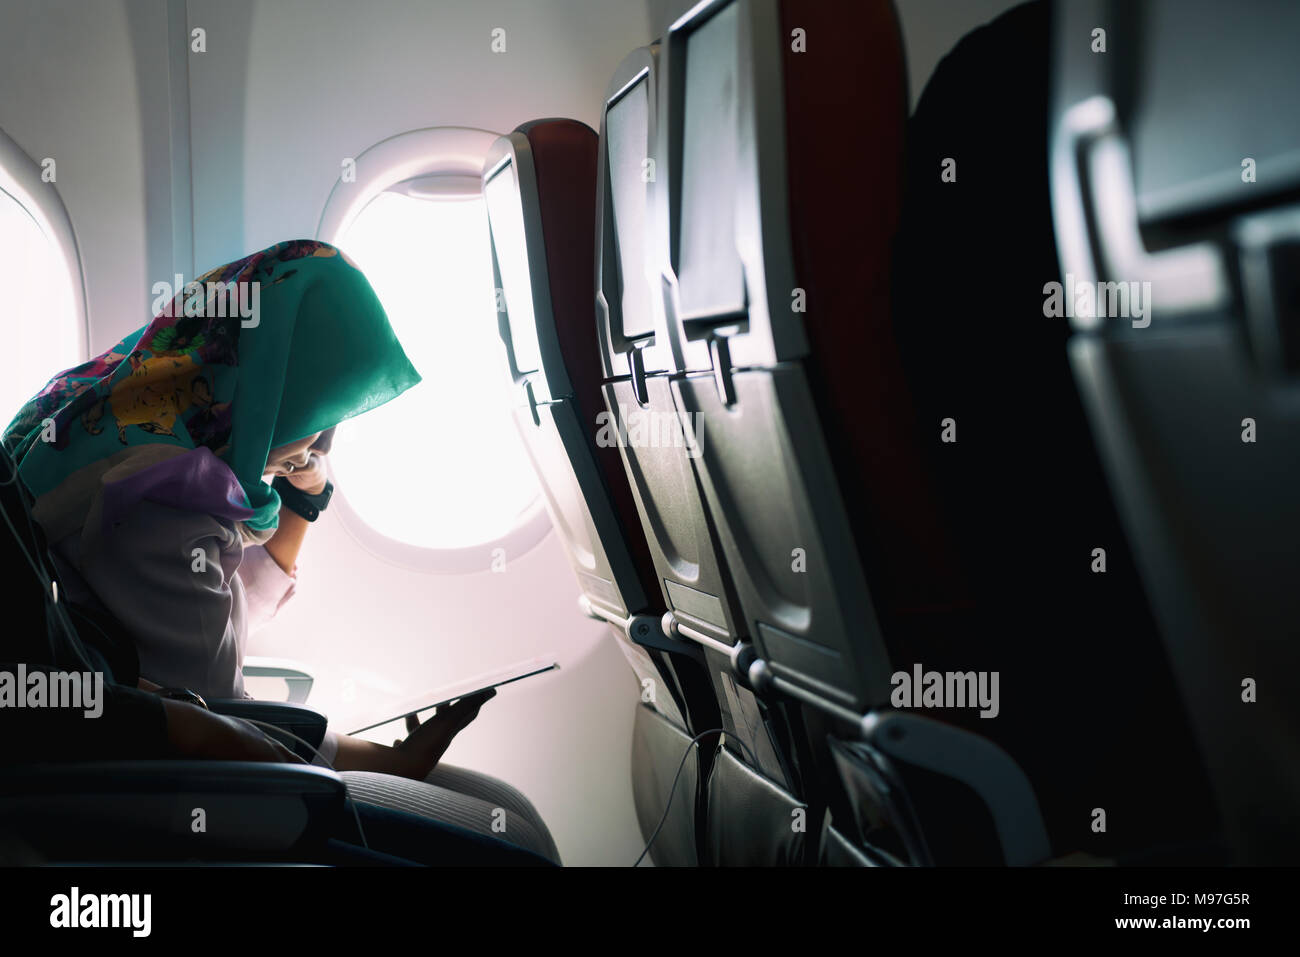 Female lonely muslim traveling on plane while reading on seats during a sunset, lowlight ambience mode - Stock Image